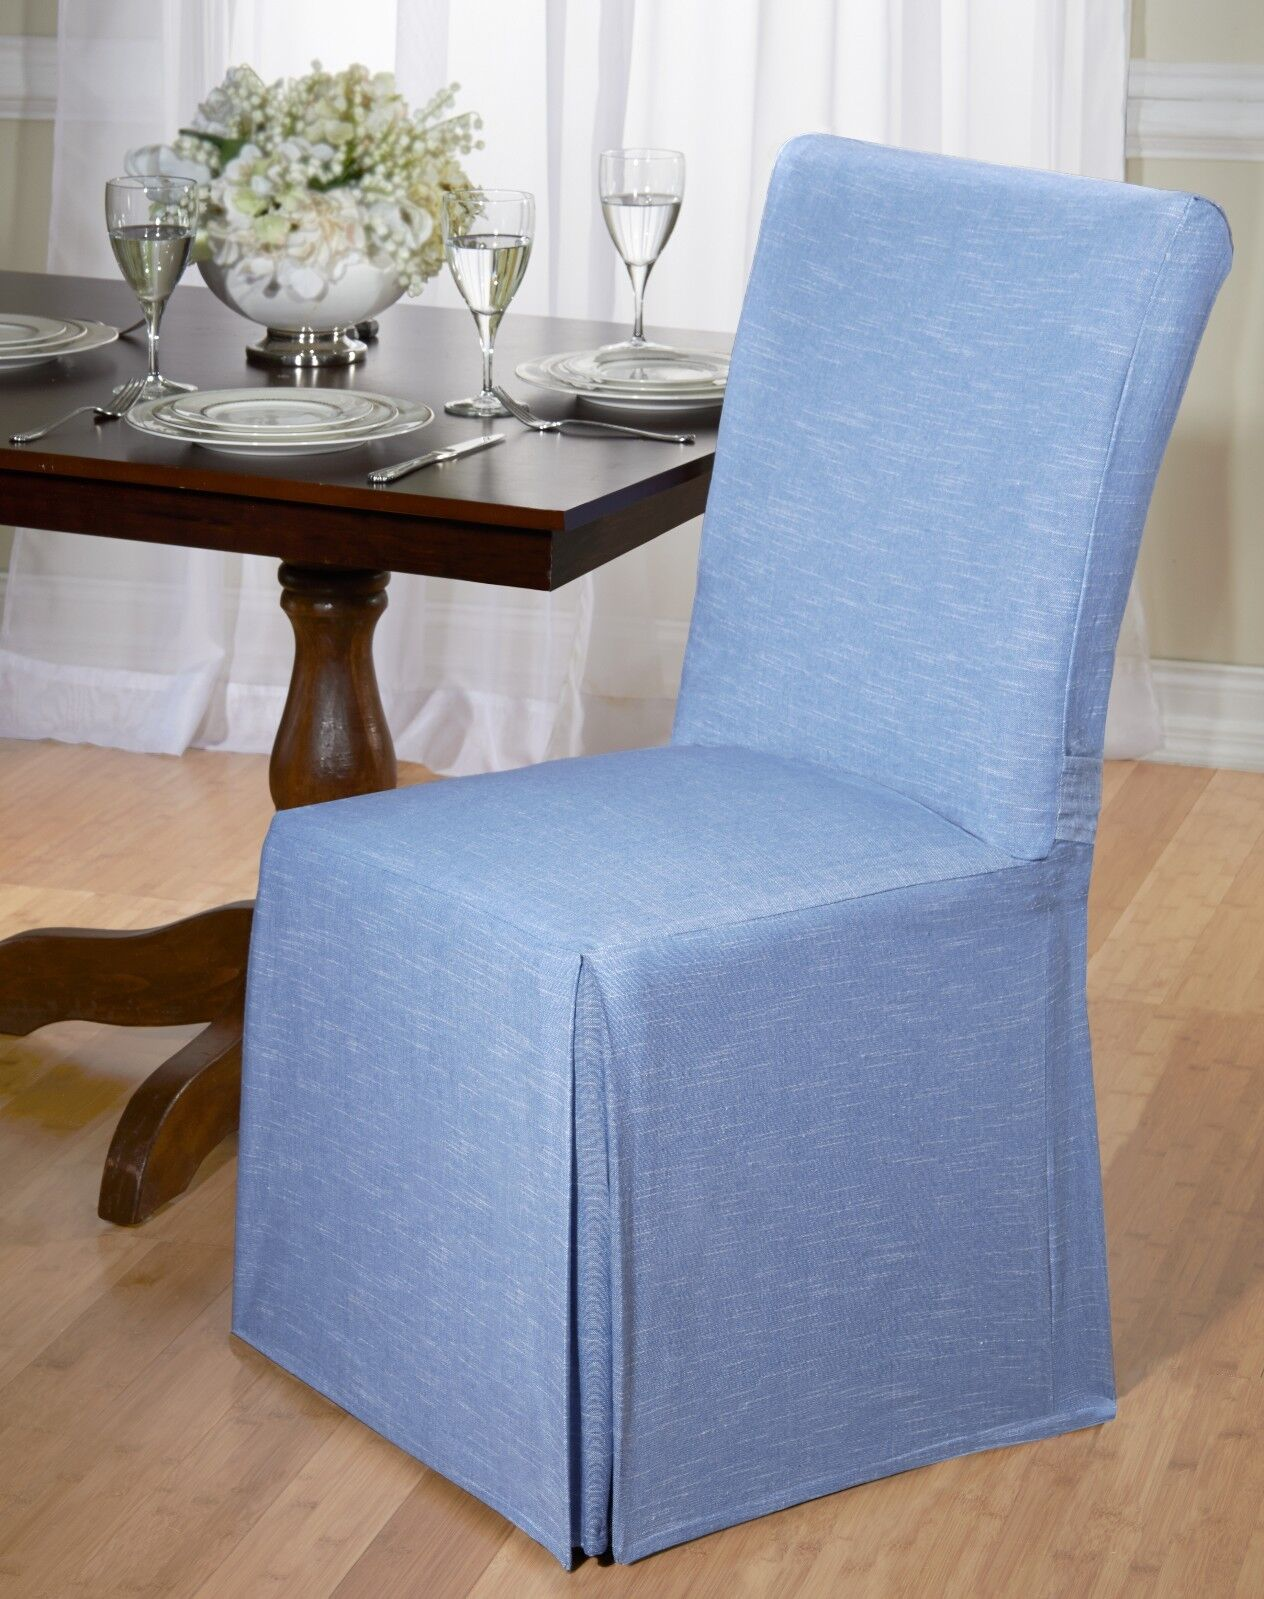 blue dining room chair covers | LUXURIOUS COTTON DINING CHAIR COVER, CHAMBRAY, BACK TIE ...